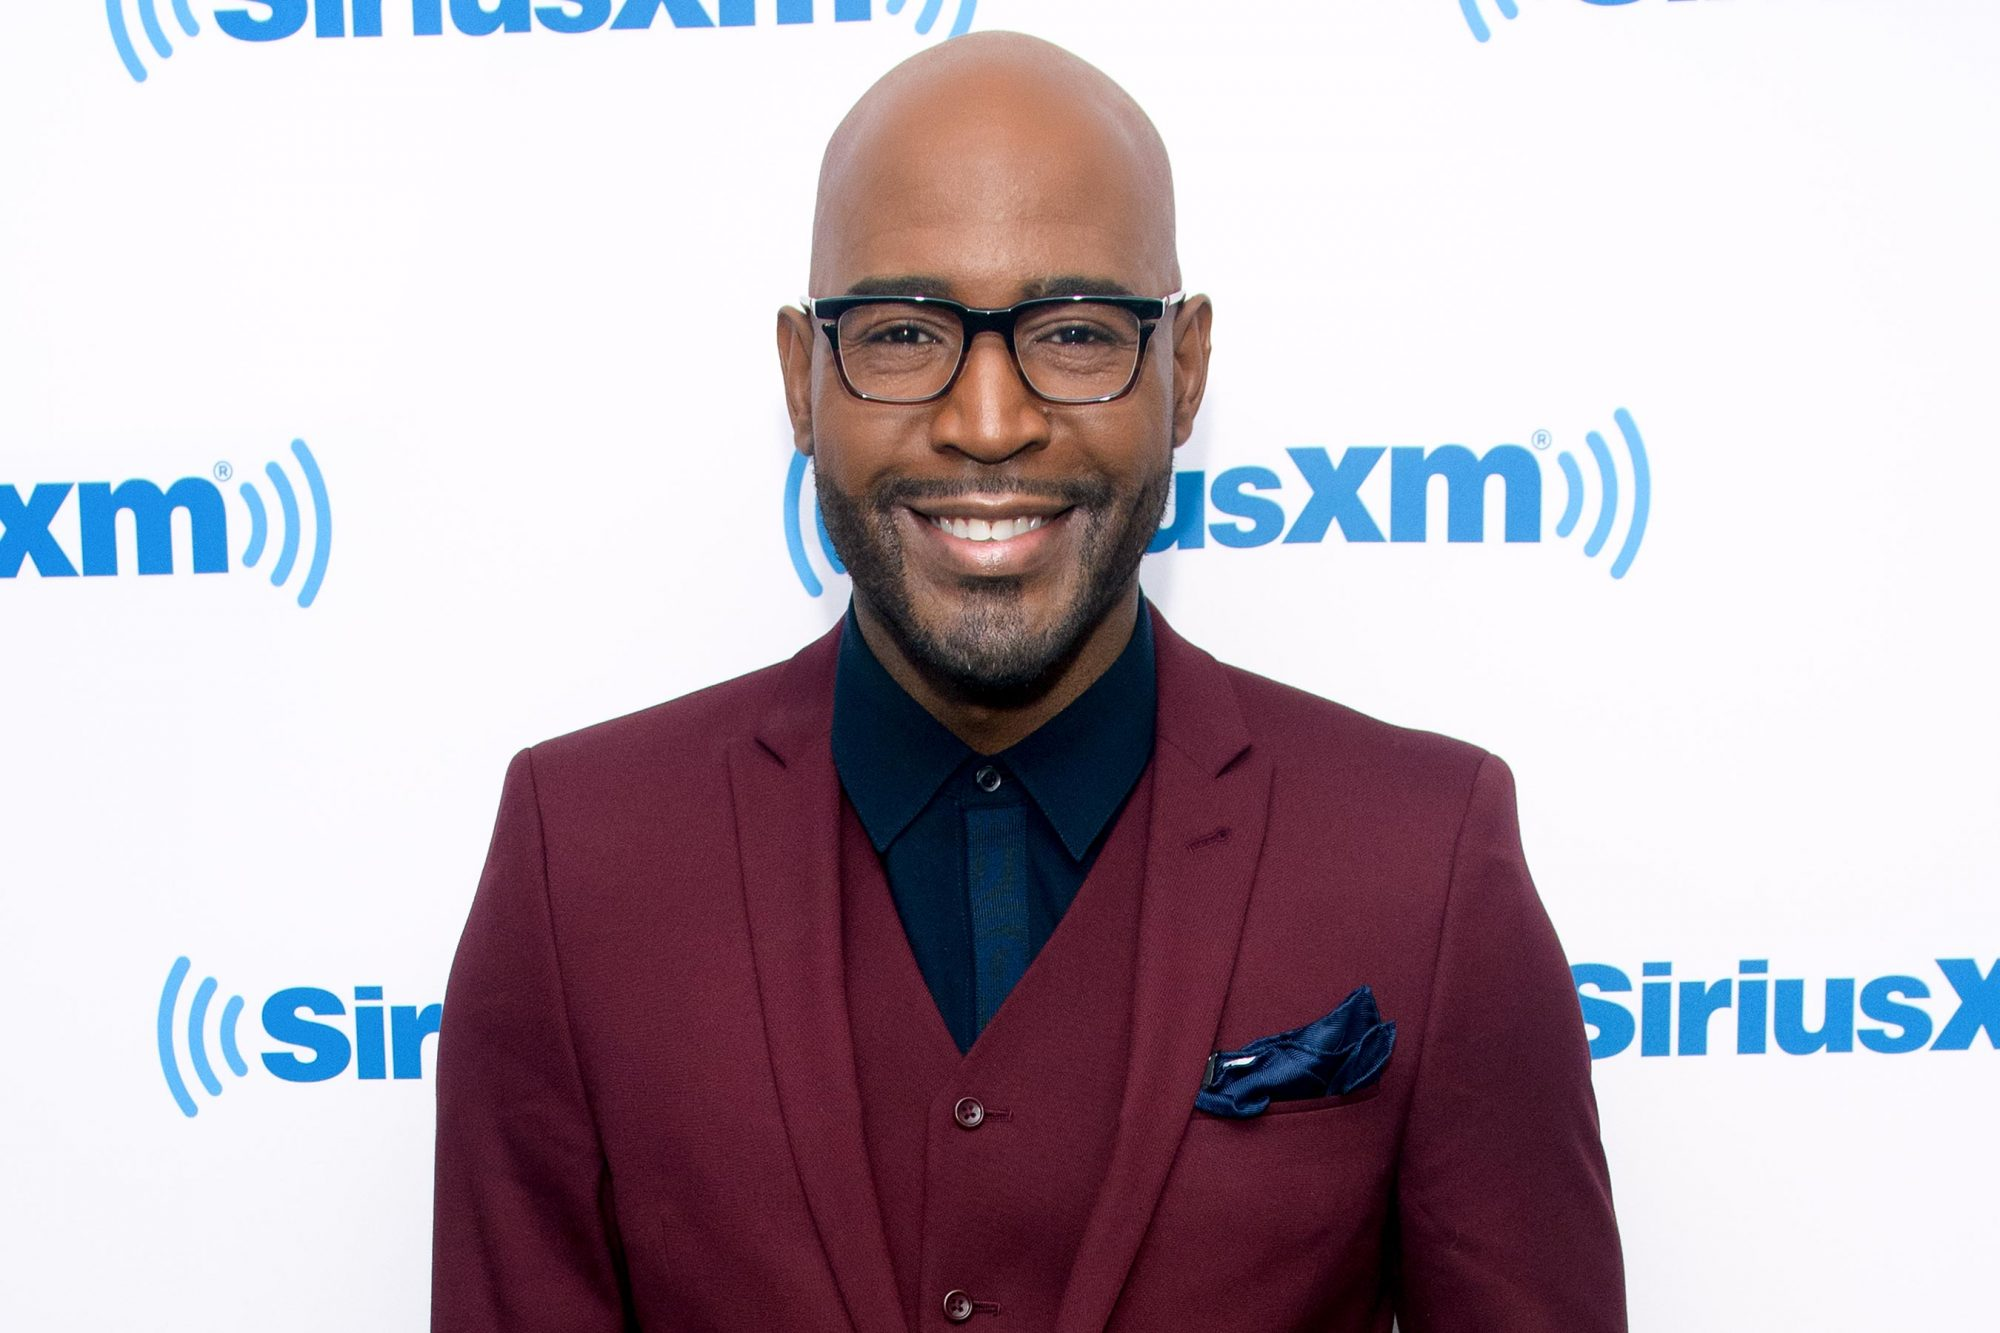 NEW YORK, NEW YORK - MARCH 04: Karamo Brown visits the SiriusXM Studios on March 04, 2019 in New York City. (Photo by Noam Galai/Getty Images)